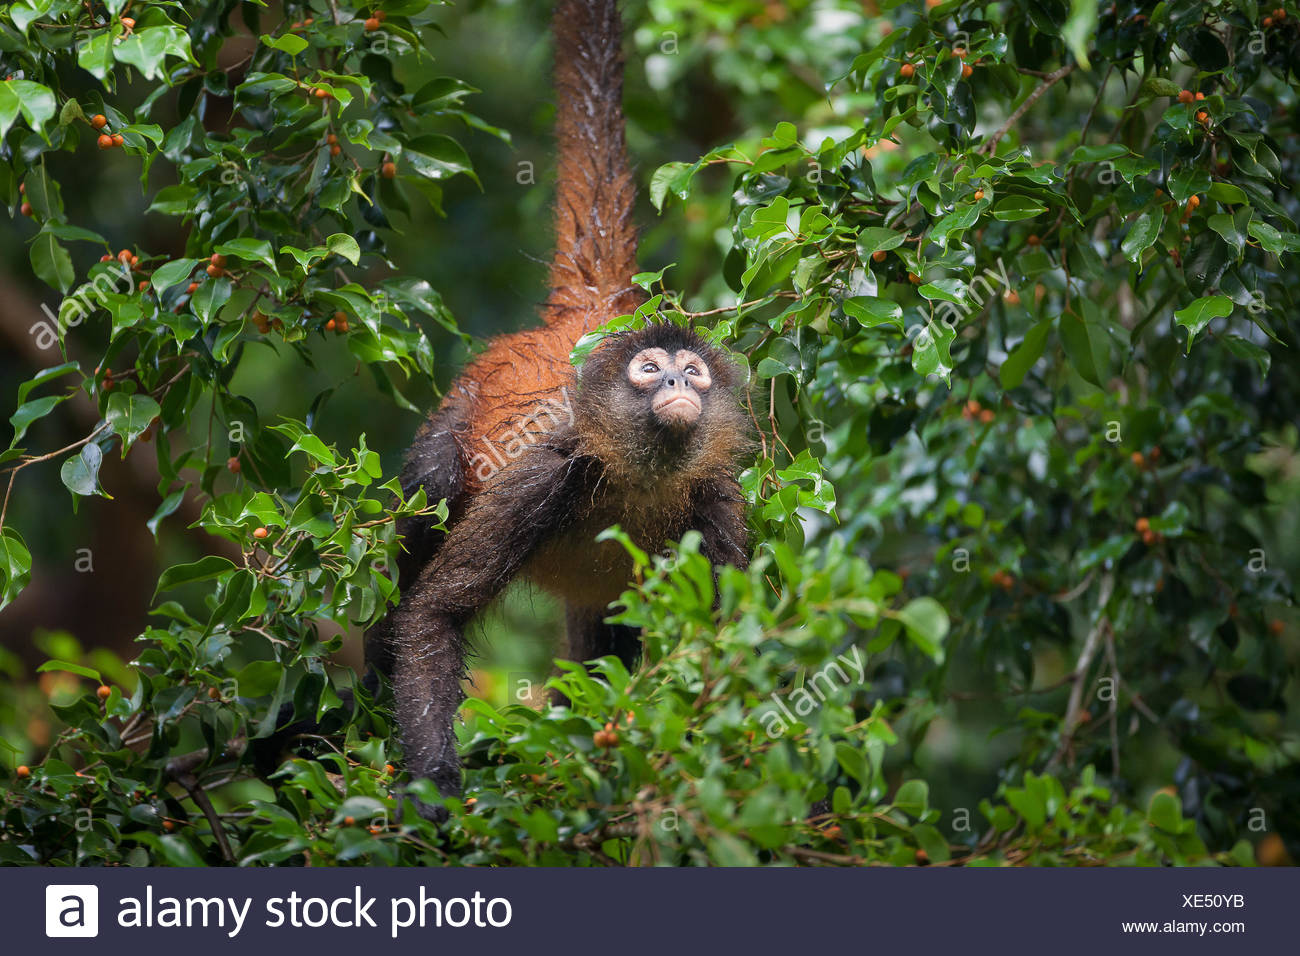 A spider monkey, Ateles geoffroyi, climbs in a tree. - Stock Image